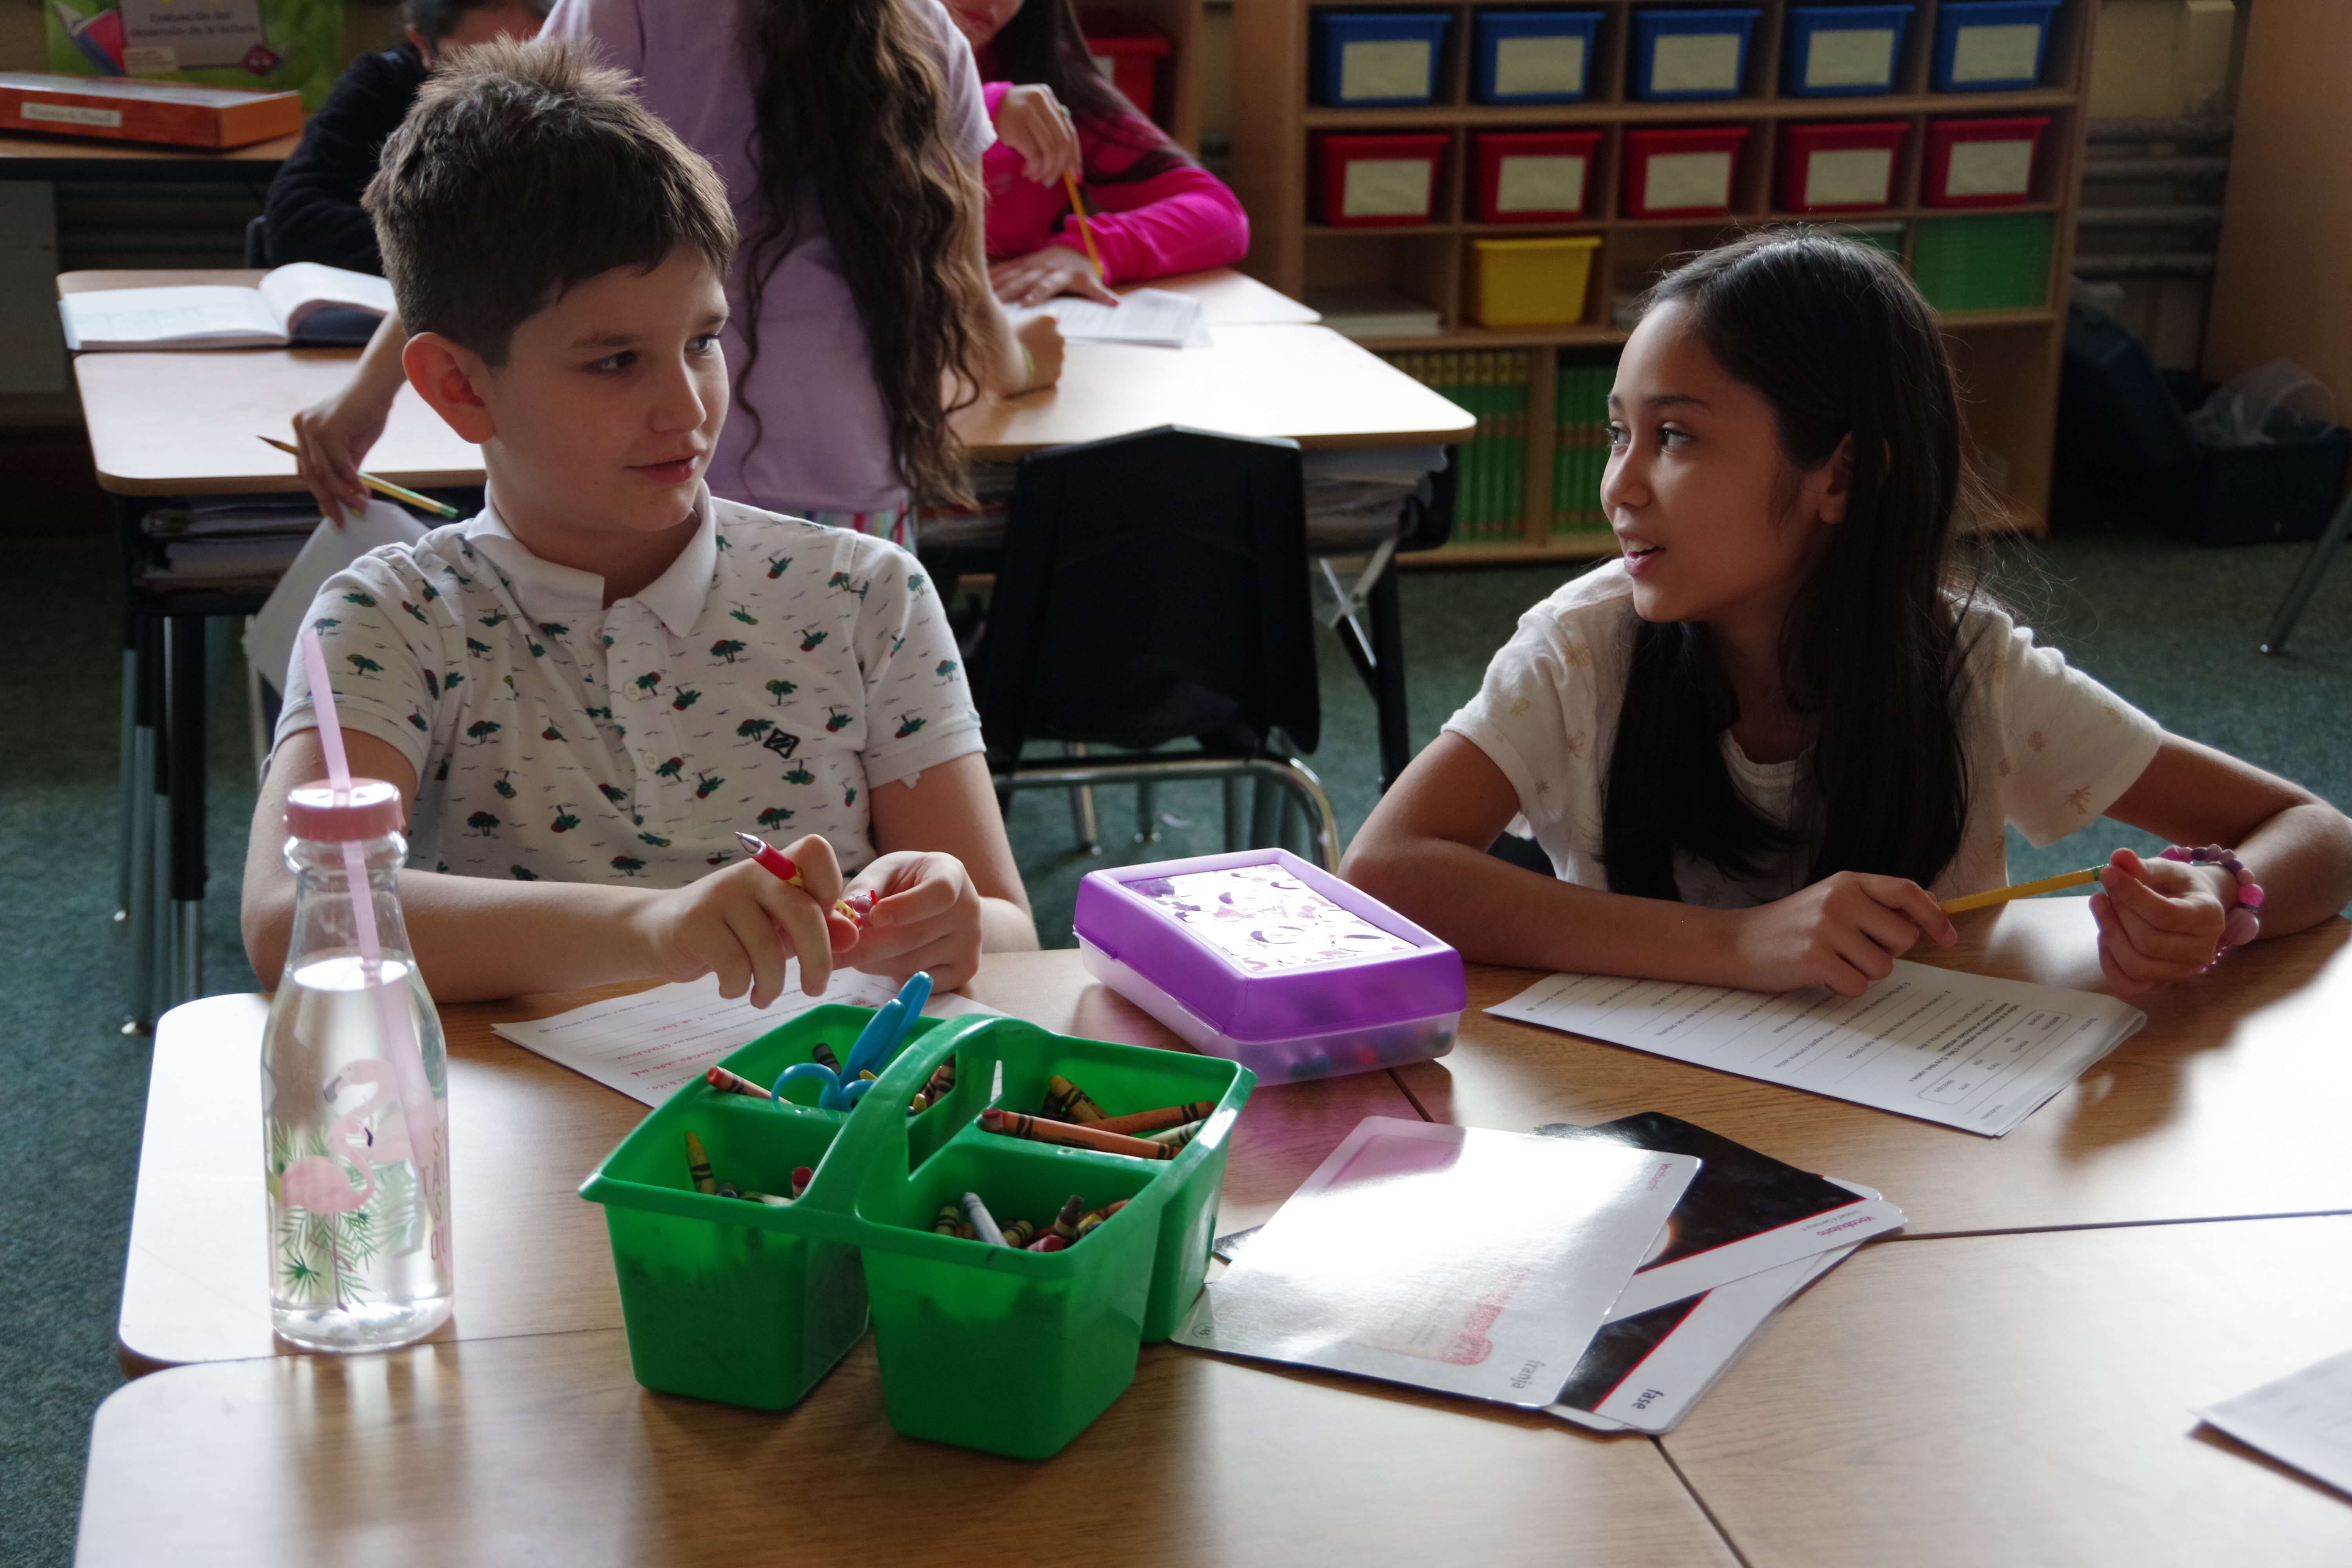 PRESS RELEASE – Holyoke Expands Dual Language Program by 40%, Providing Program Access to Approximately 120 More Students